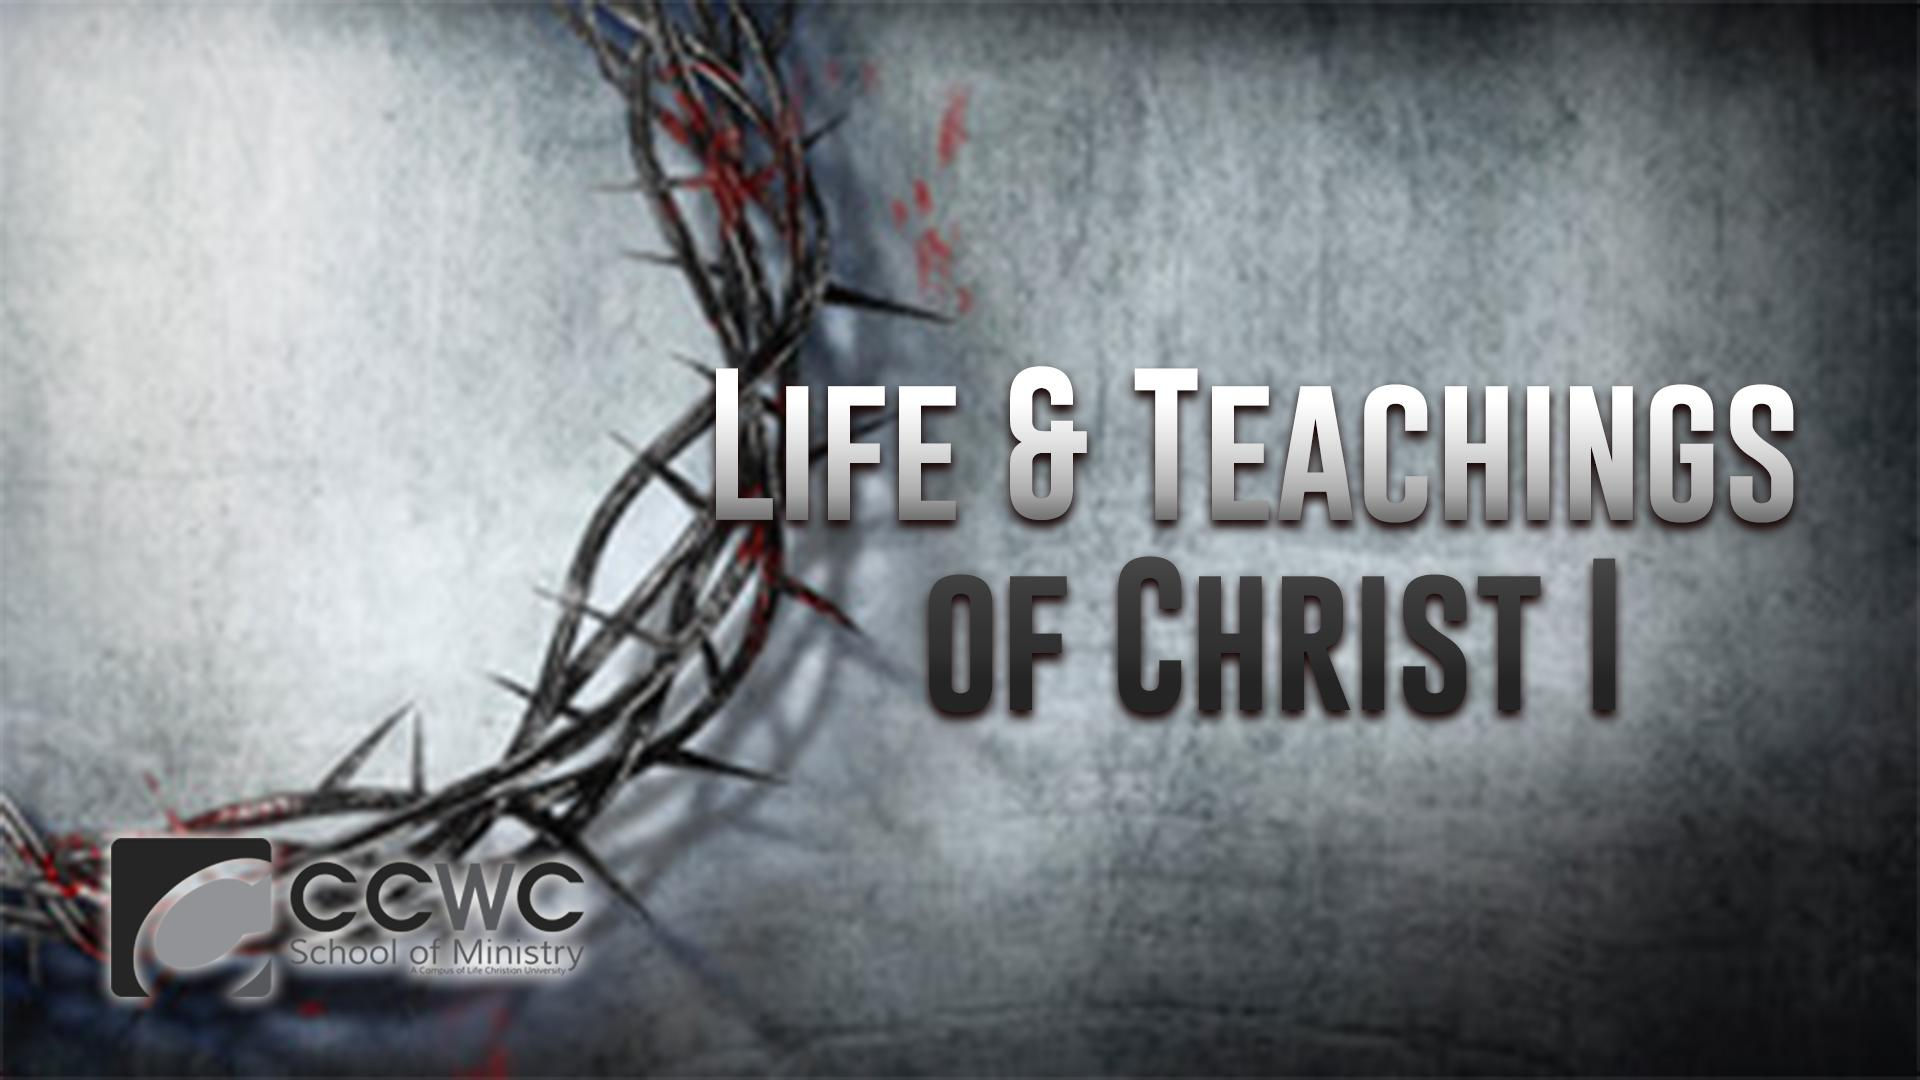 Life Christian University- Life & Teachings of Christ I